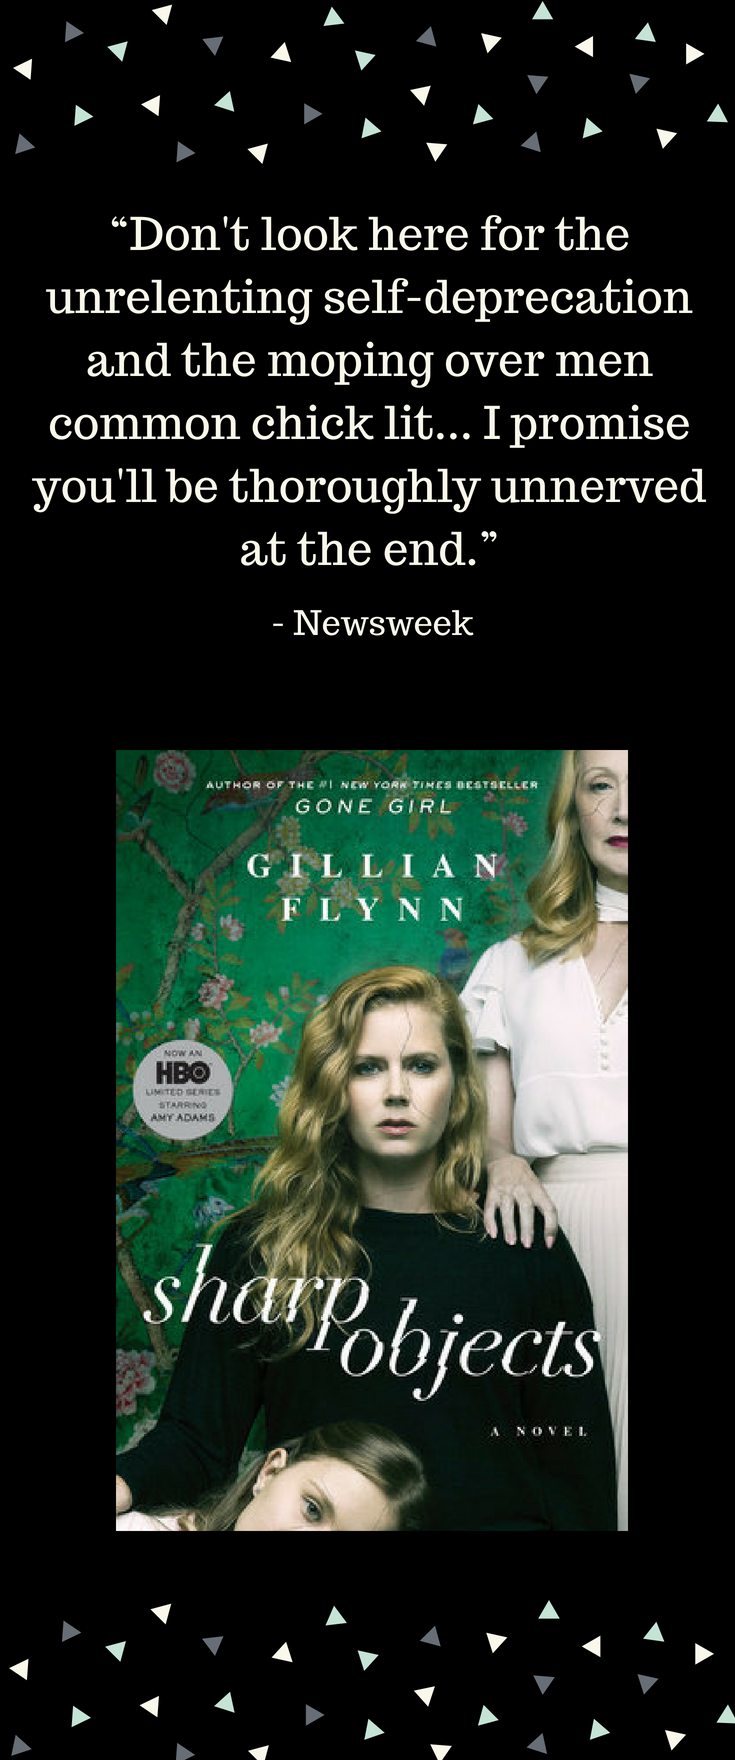 Sharp Objects Movie Tie In By Gillian Flynn 9780525575740 Penguinrandomhouse Com Books Sharp Objects Book Addict Book Worth Reading